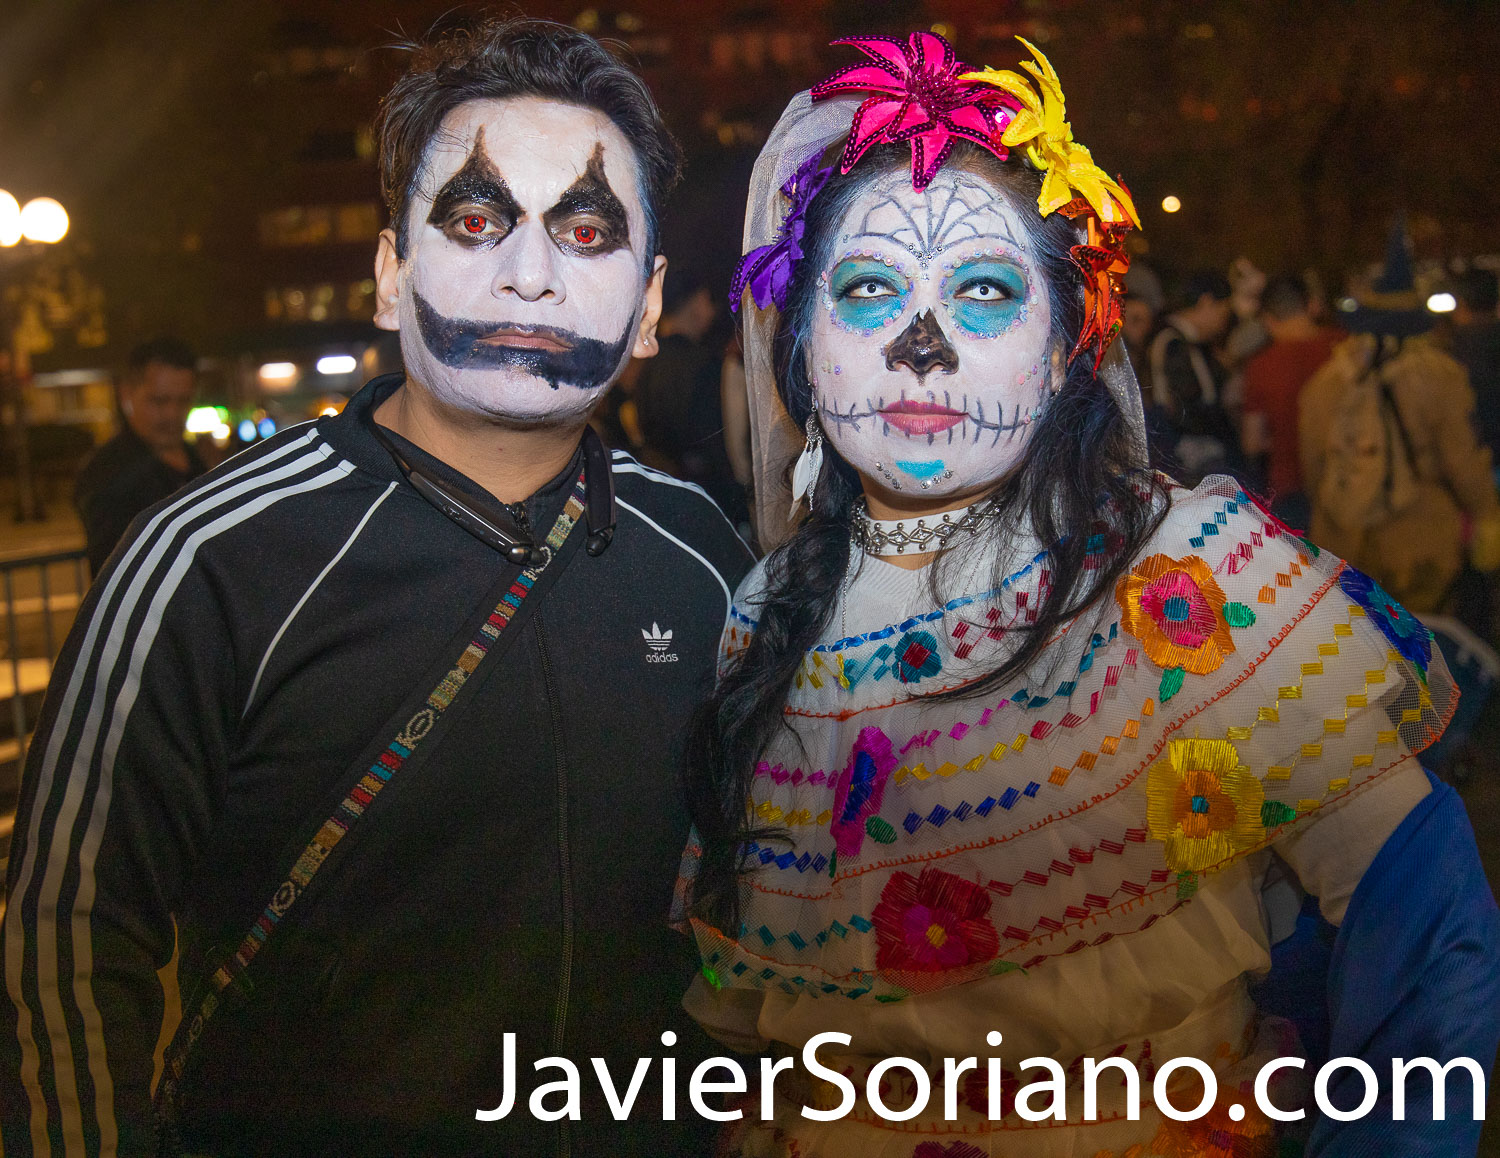 Thursday, October 31, 2019. Manhattan, New York City – 46th Annual New York City Halloween Parade. Photo by Javier Soriano/www.JavierSoriano.com